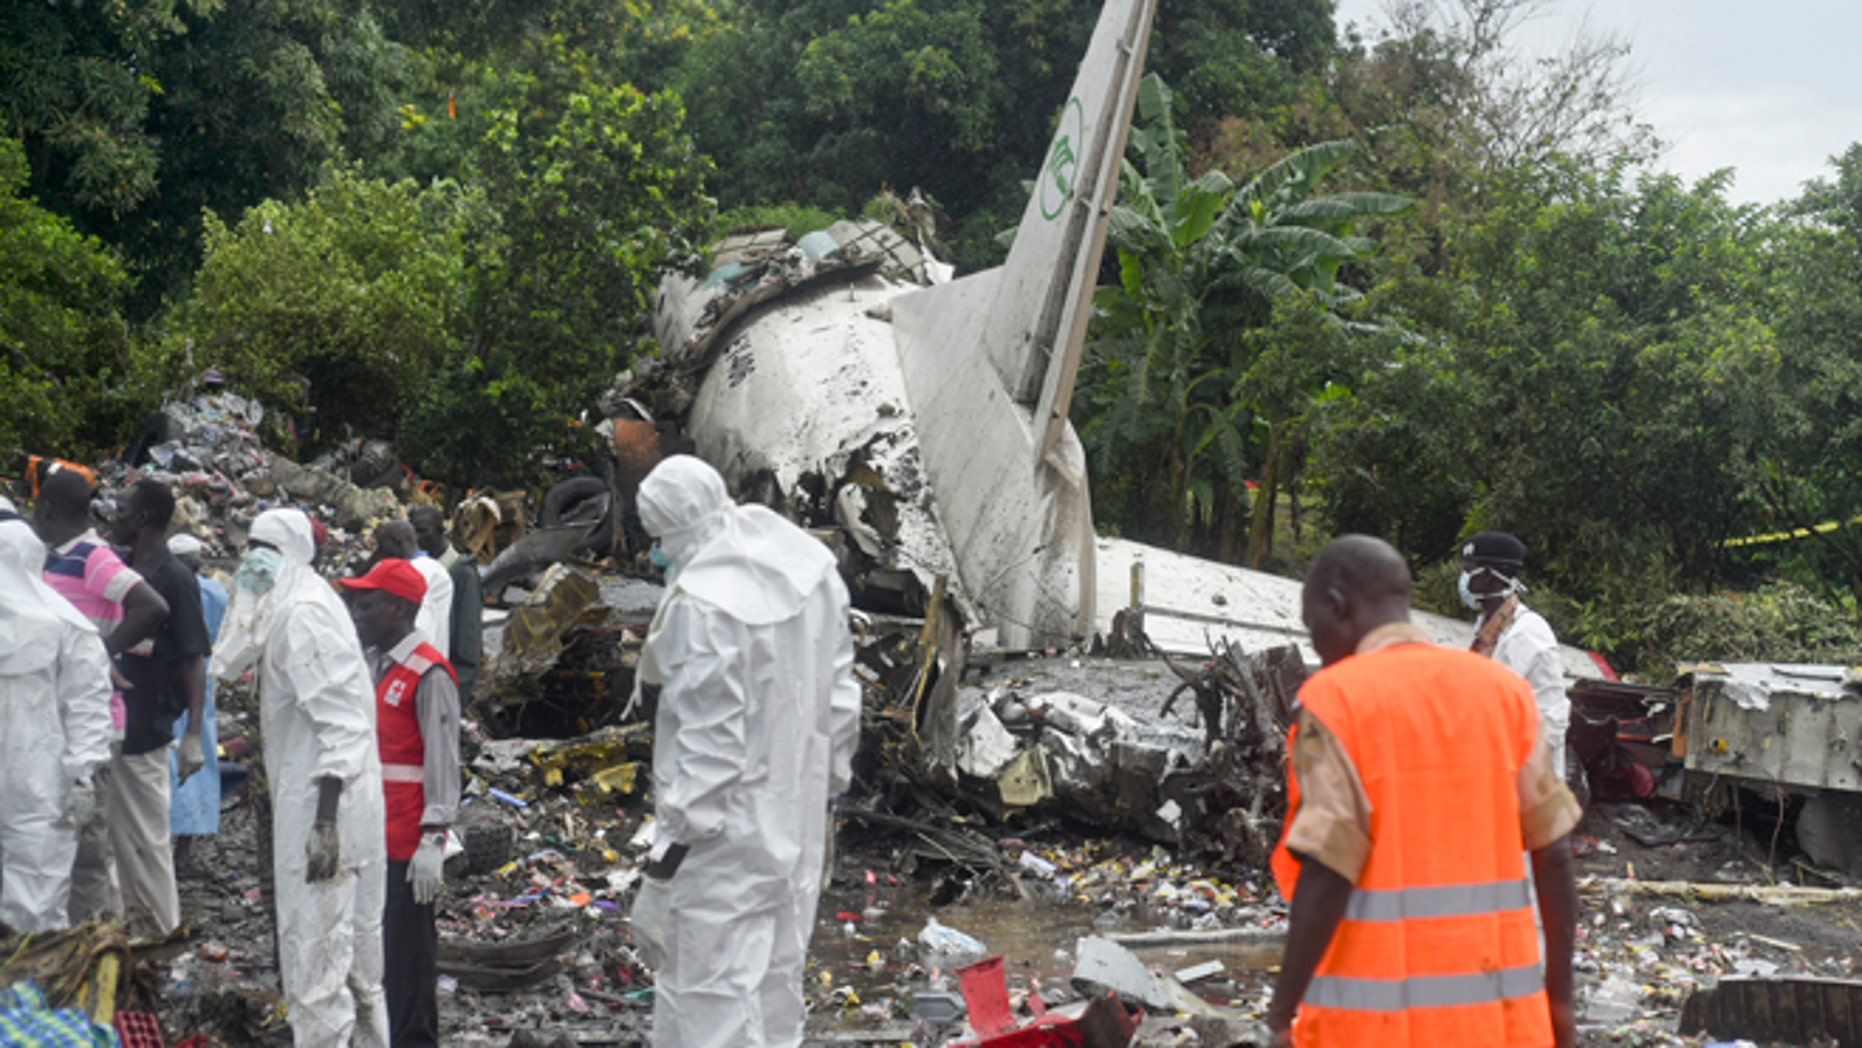 Nov. 4, 2015: Responders pick through the wreckage of a cargo plane which crashed in the capital Juba, South Sudan.  The cargo plane was taking off from the South Sudanese capital of Juba when it crashed along the banks of the Nile River, killing dozens according to witnesses and the government.